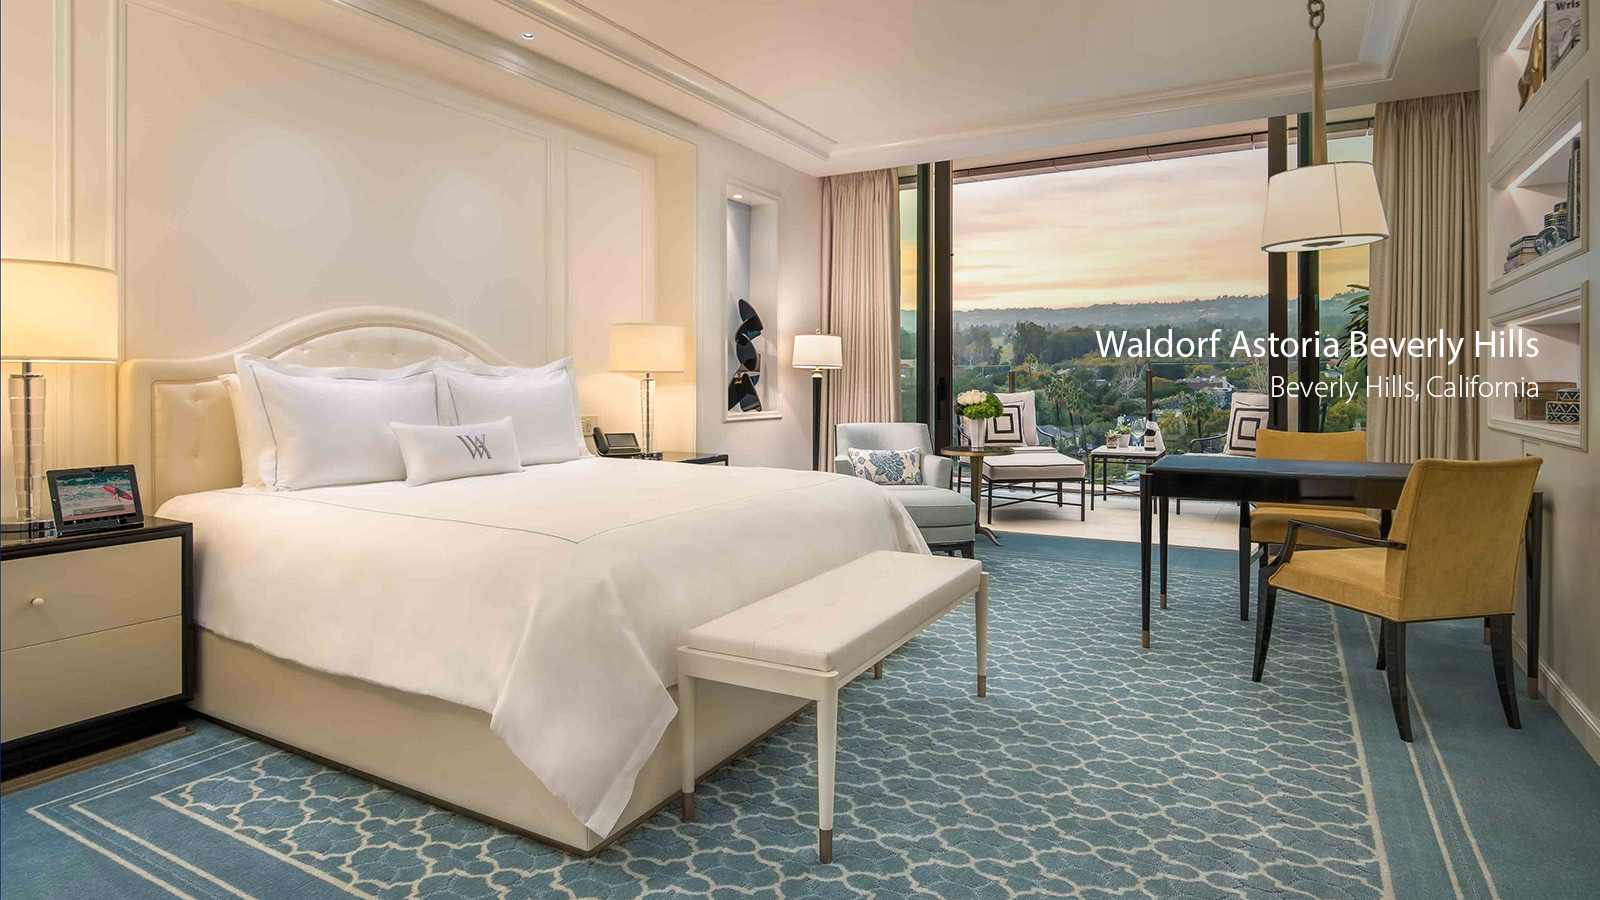 Waldorf Astoria in Beverly Hills